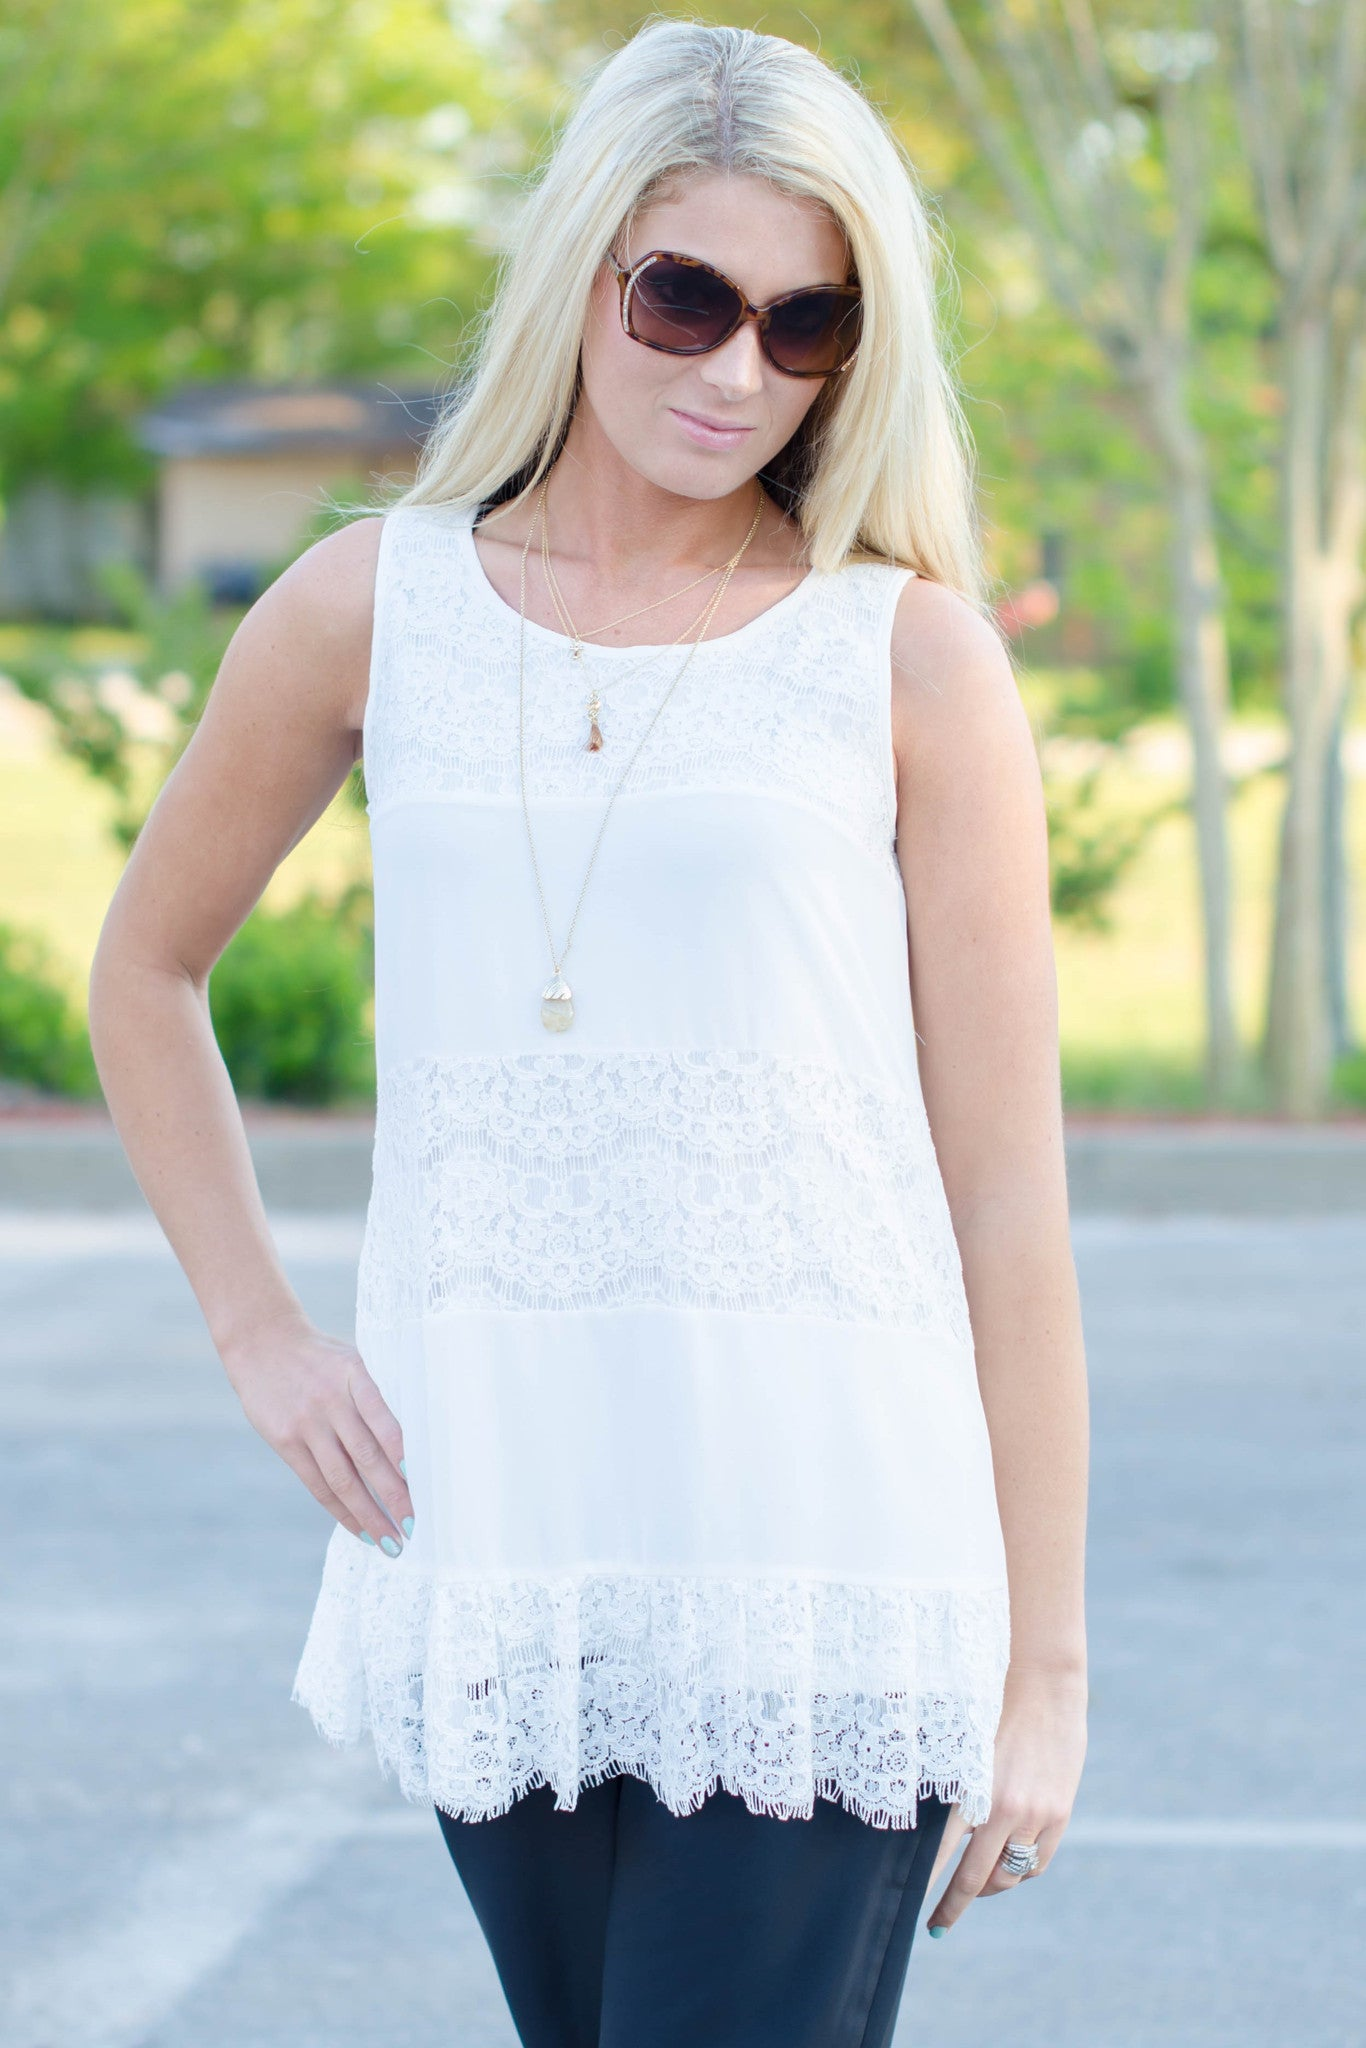 Darling: Kelsey Top, Ivory